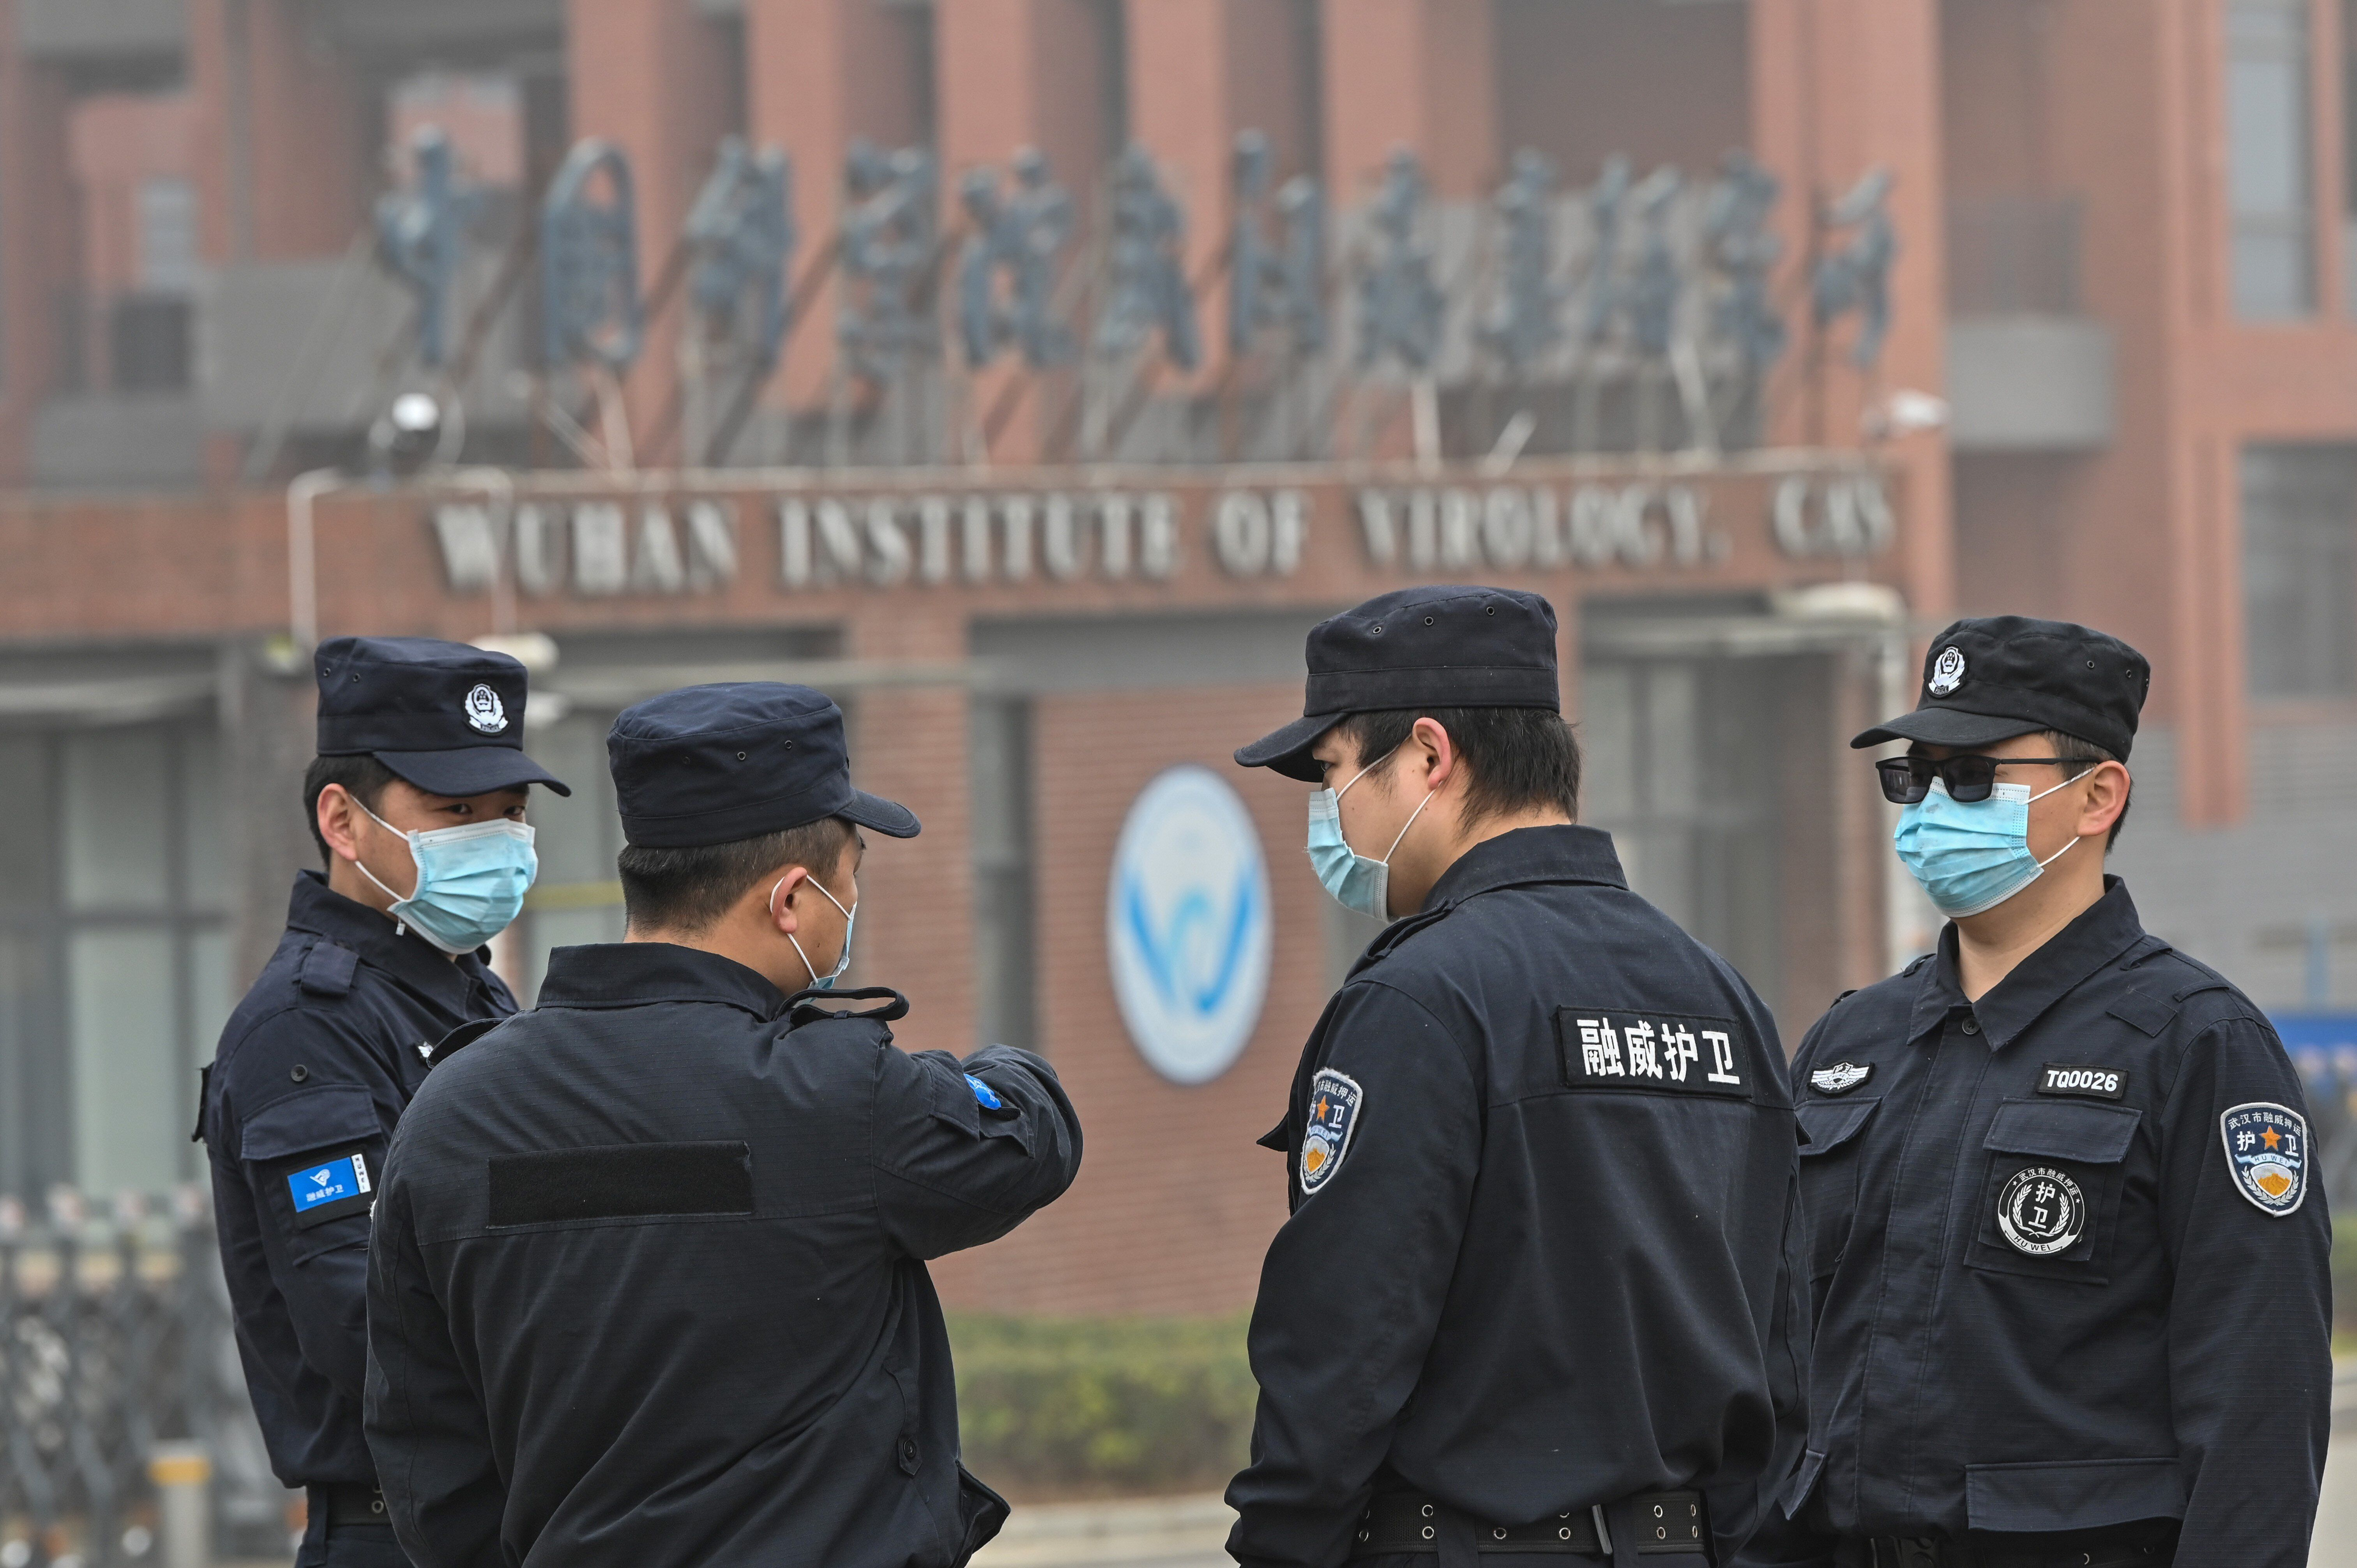 Security personnel outside the Wuhan Institute of Virology in Wuhan, China, on Feb. 3, 2021.